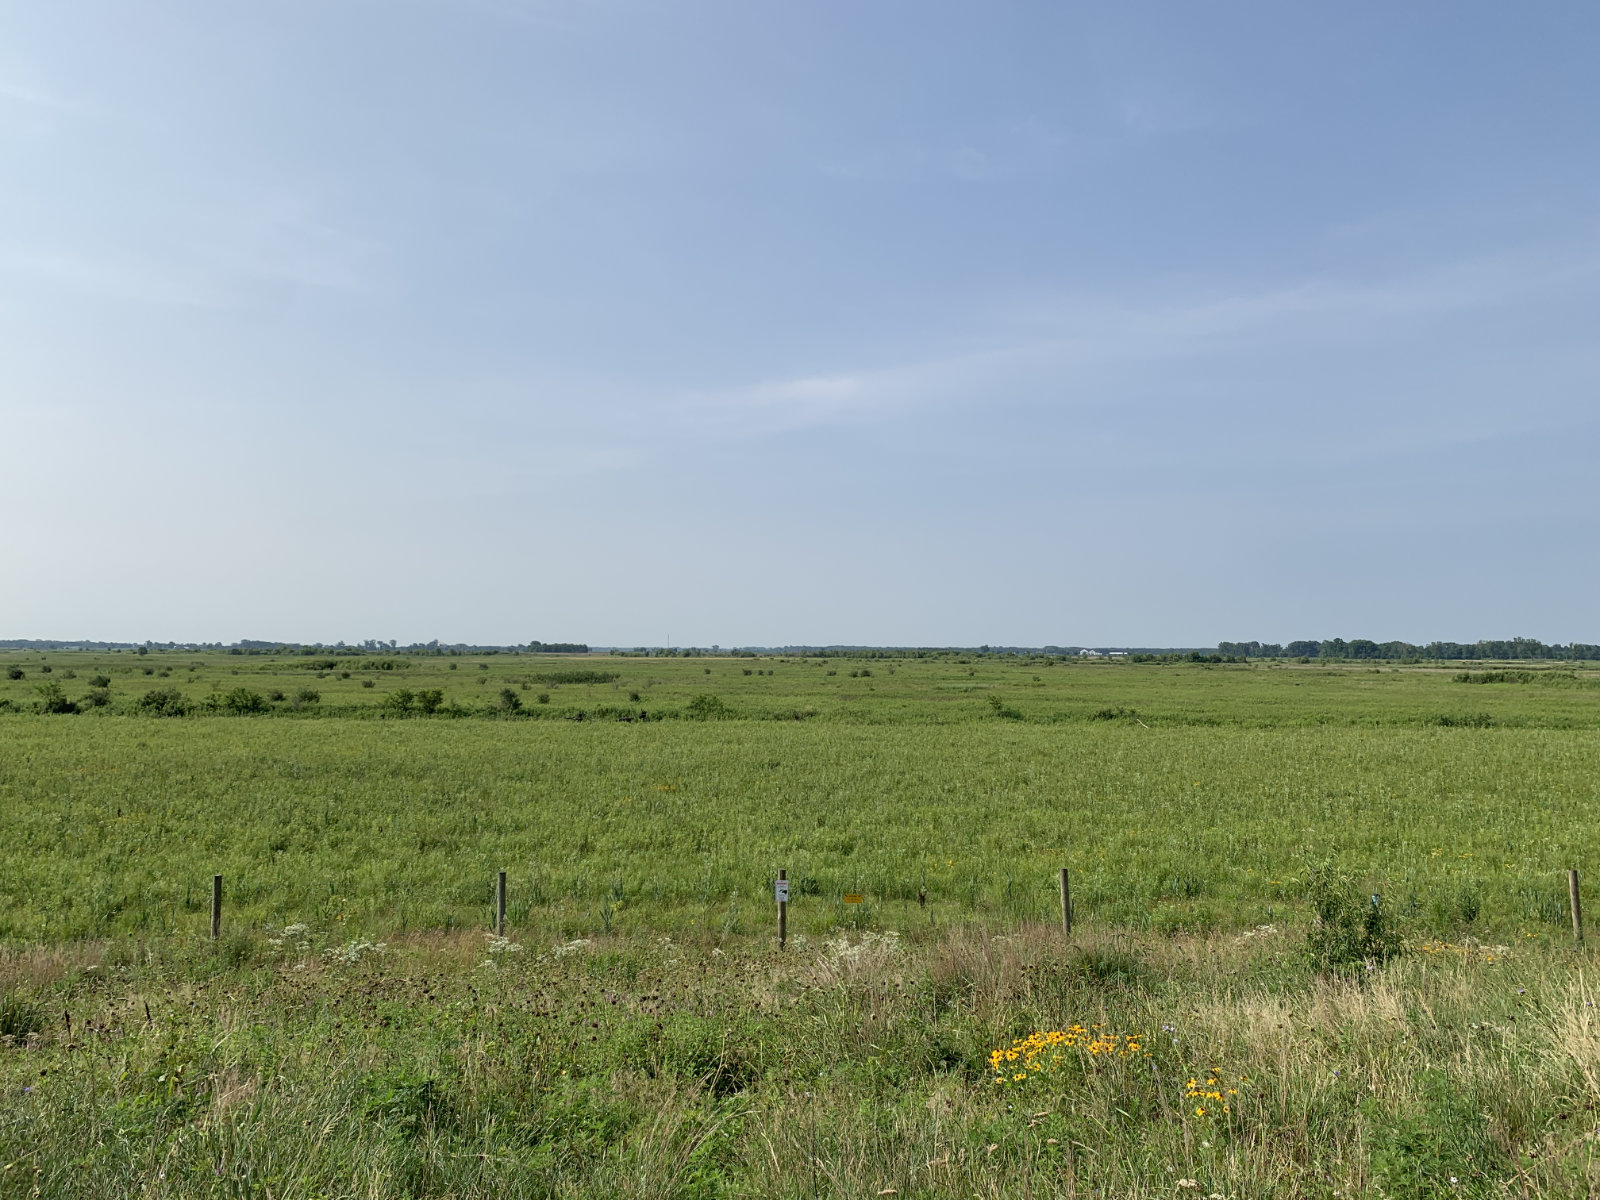 Looking for bison at Kankakee Sands Nature Conservancy Indiana